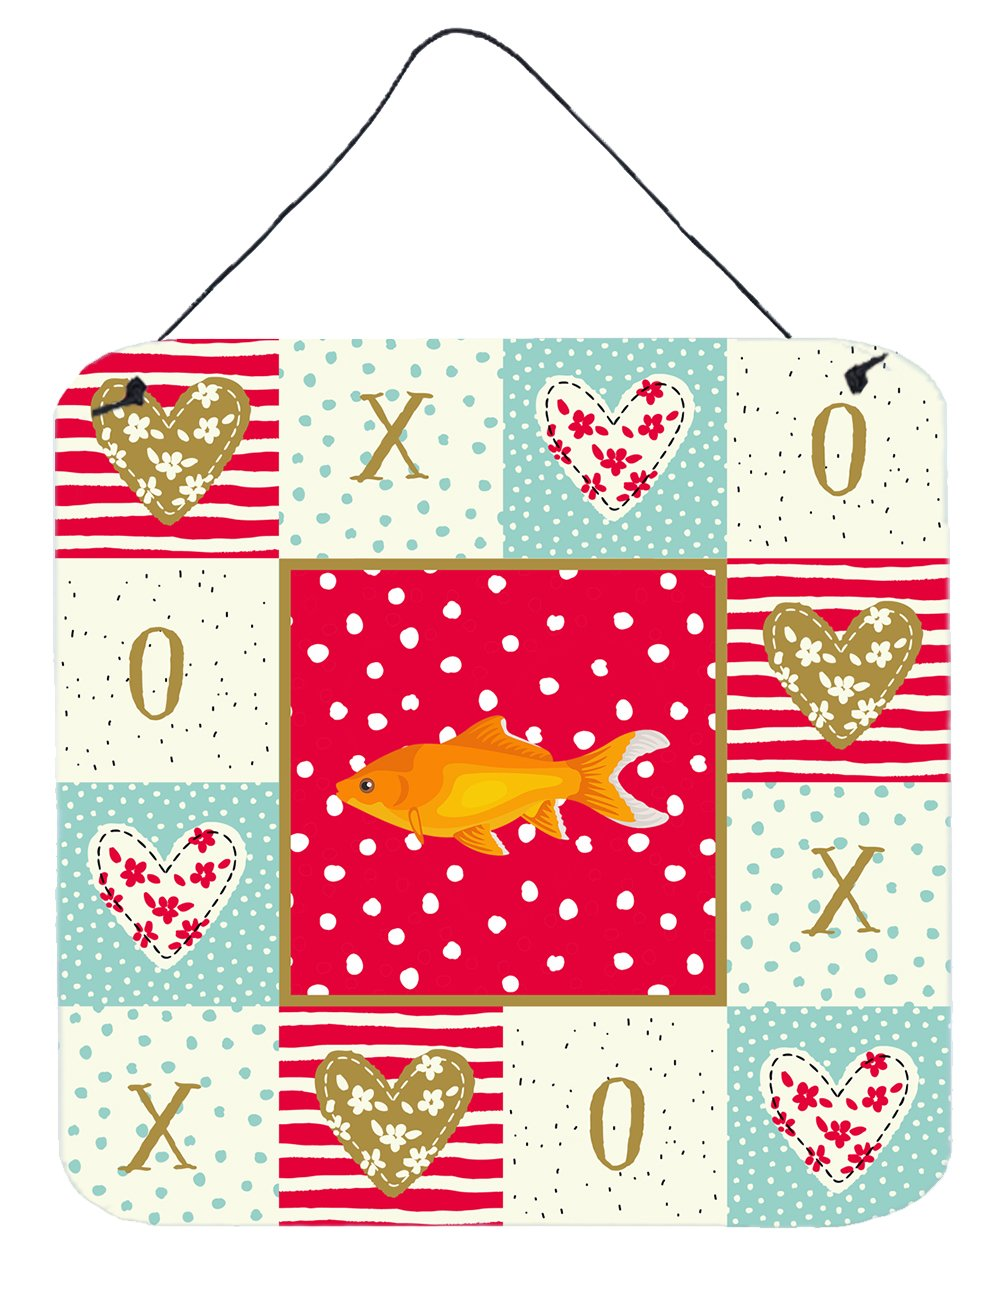 Goldfish Common Love Wall or Door Hanging Prints CK5473DS66 by Caroline's Treasures